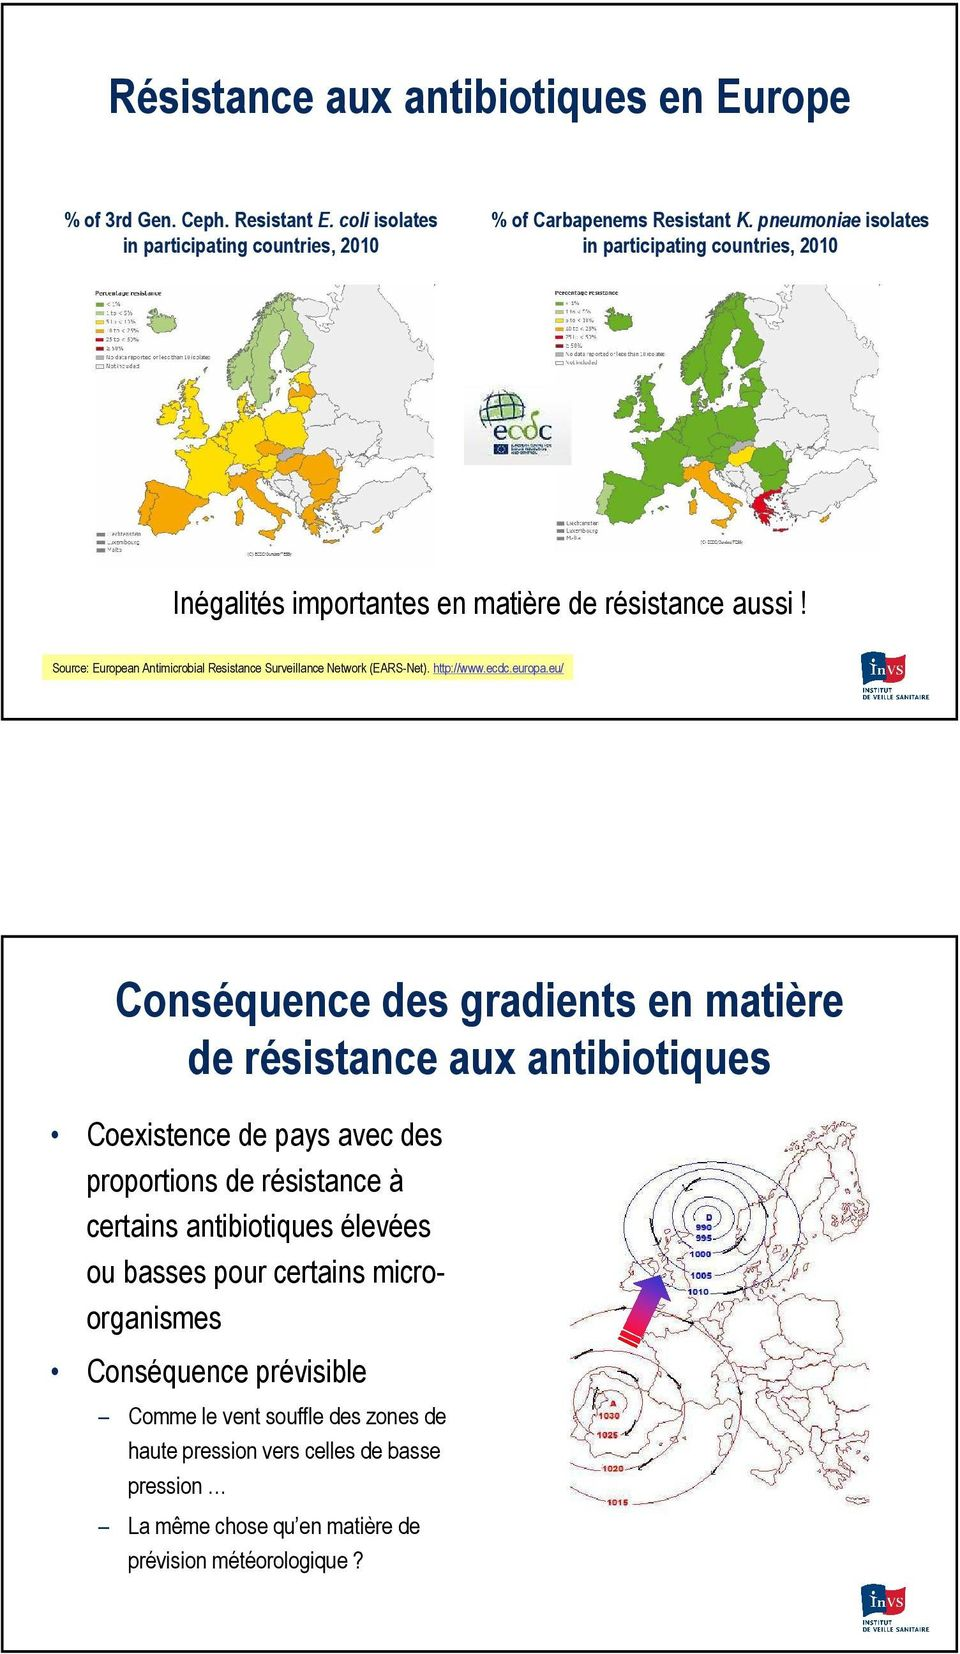 Source: European Antimicrobial Resistance Surveillance Network (EARS-Net). http://www.ecdc.europa.